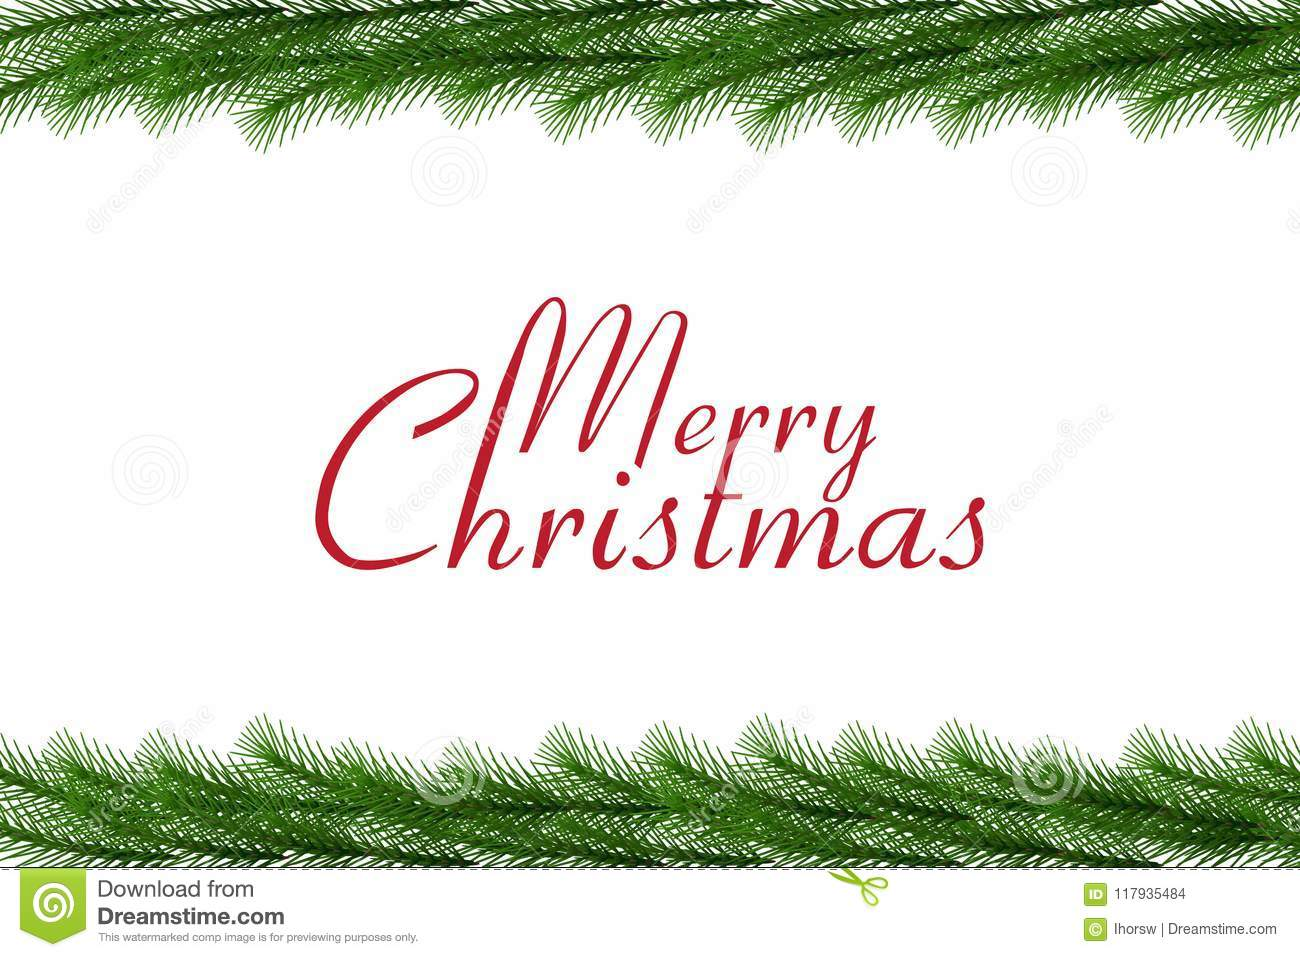 Merry Christmas Text With Christmas Garland Vector Border Stock